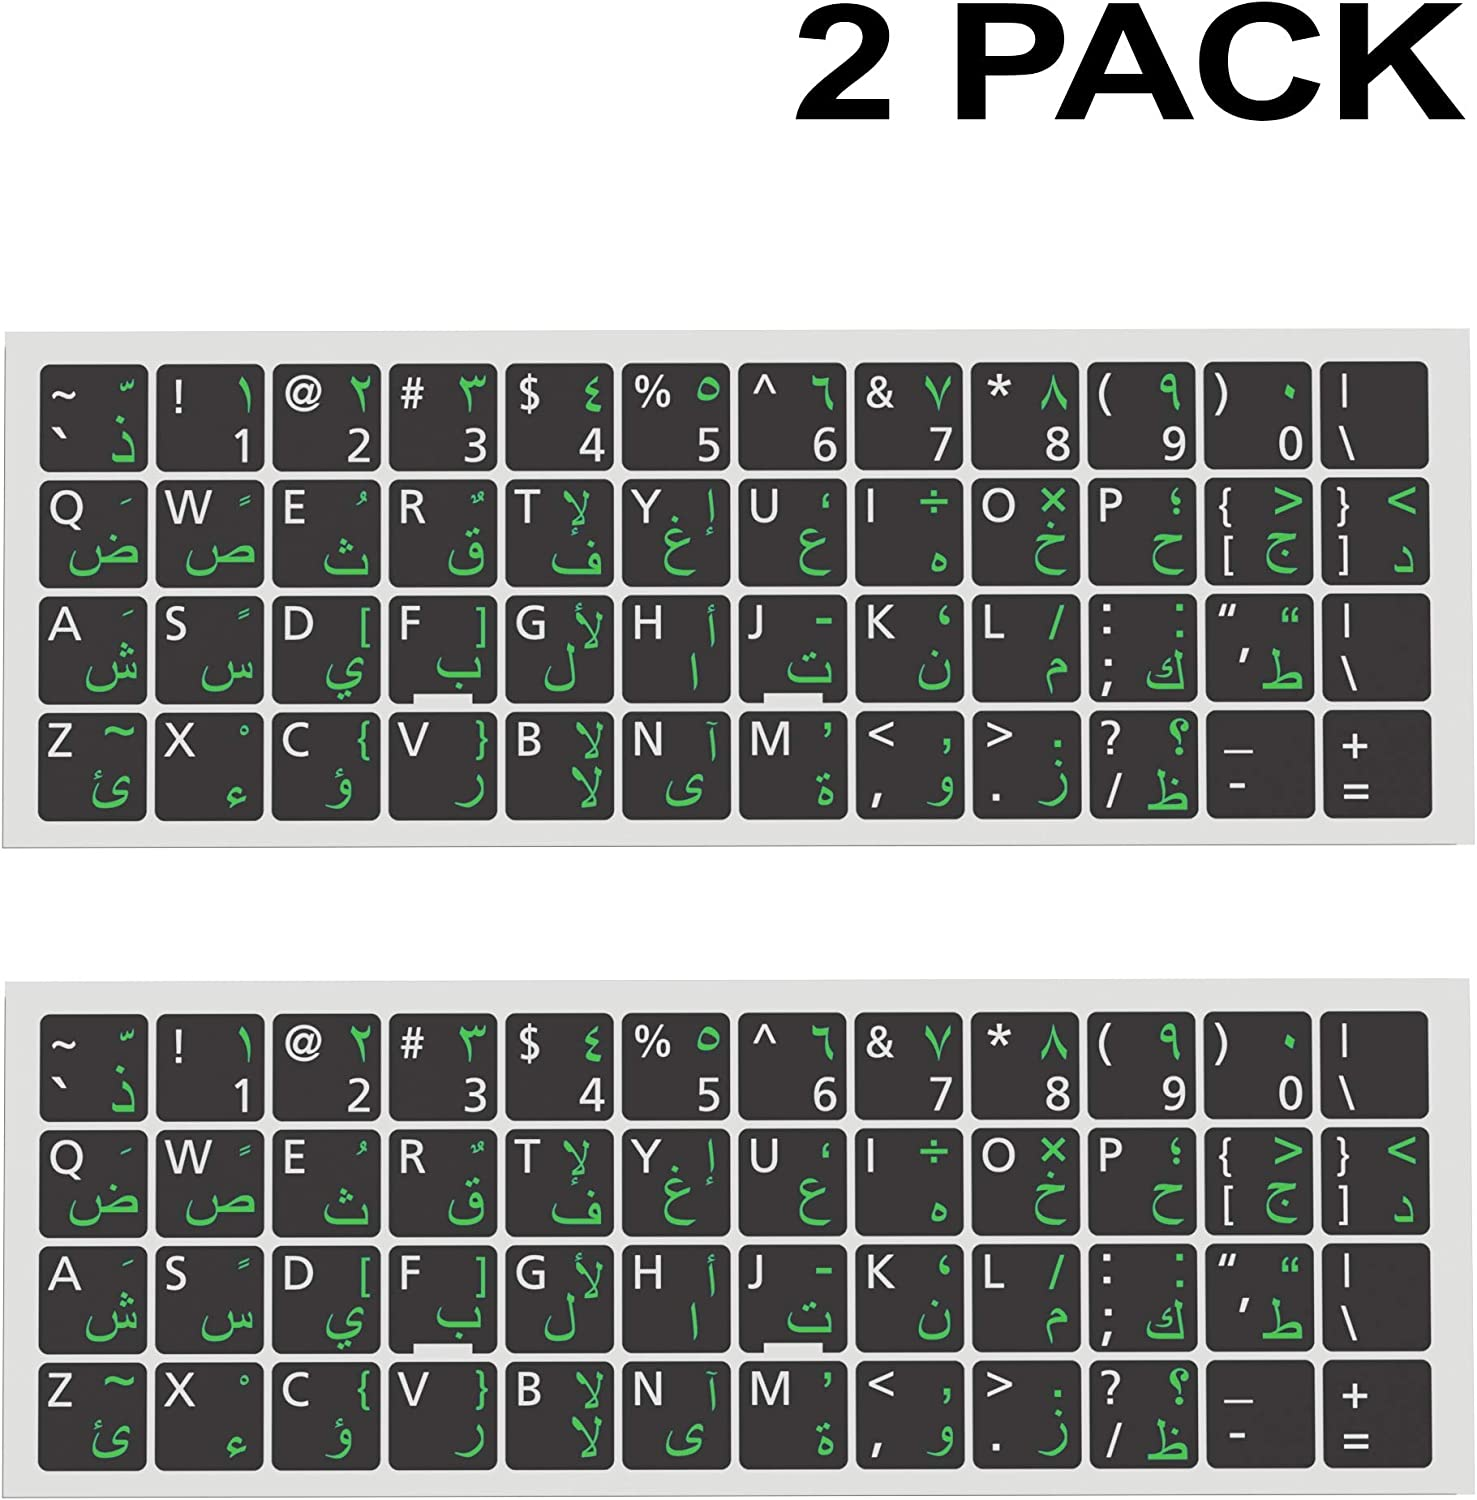 Universal English-Arabic Keyboard Stickers 2 PCS Replacement Ergonomic Cyrillic None Transparent PC Large Green Lettering Black Background for Notebook Desktop Computer Laptops (Arabic-WhiteGreen)